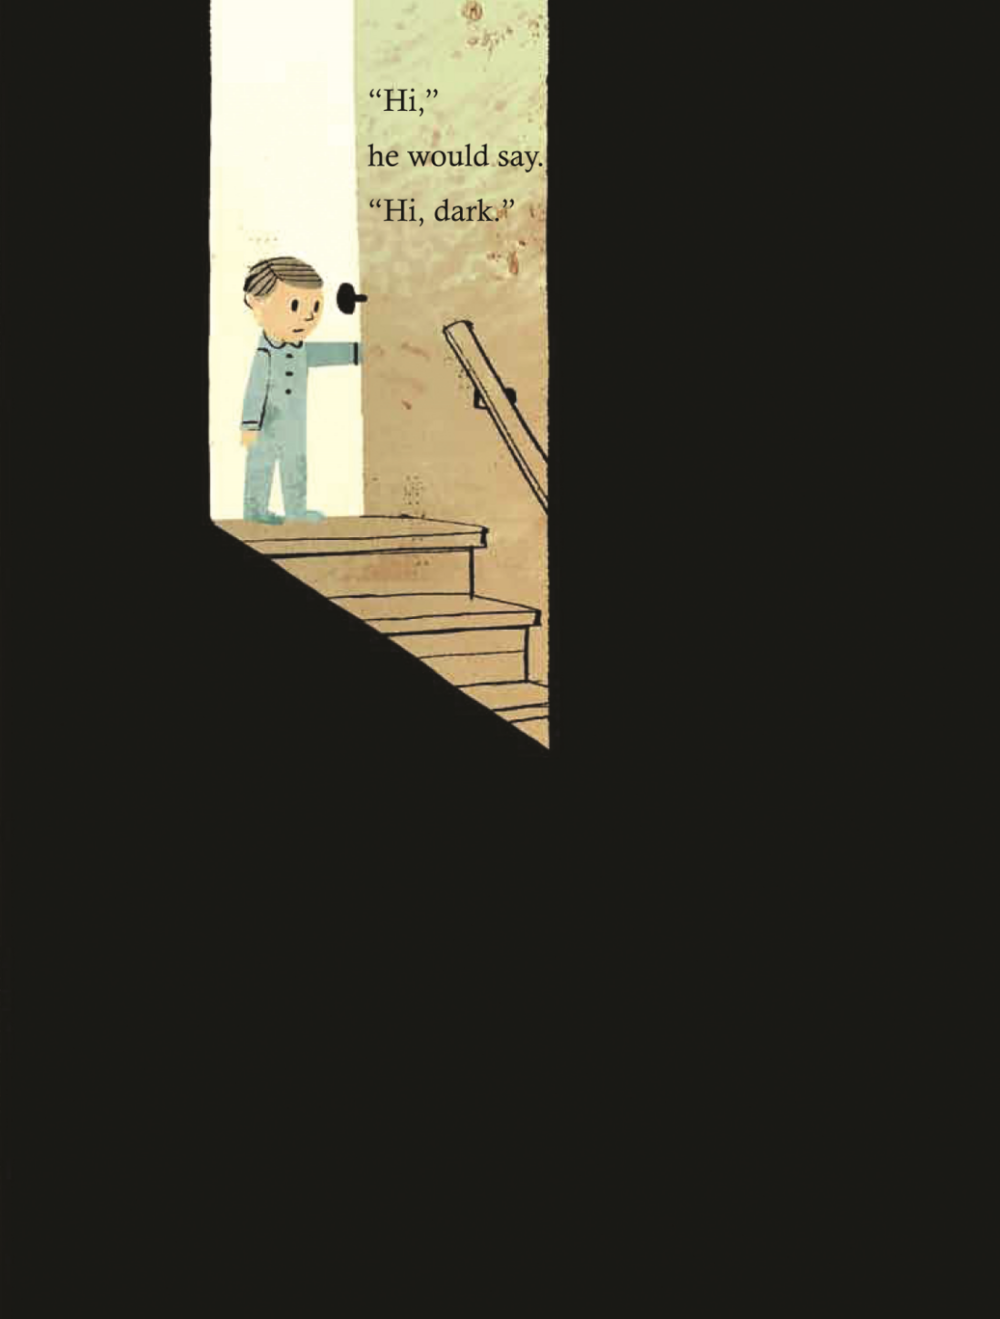 """If you haven't read the children's book """"The Dark"""", illustrated by Jon Klassen, it's fantastic. It's a good reminder for adults and children alike that sometimes, when we face our fears, when we go look into the dark, we find out we don't have to be so afraid, afterall."""